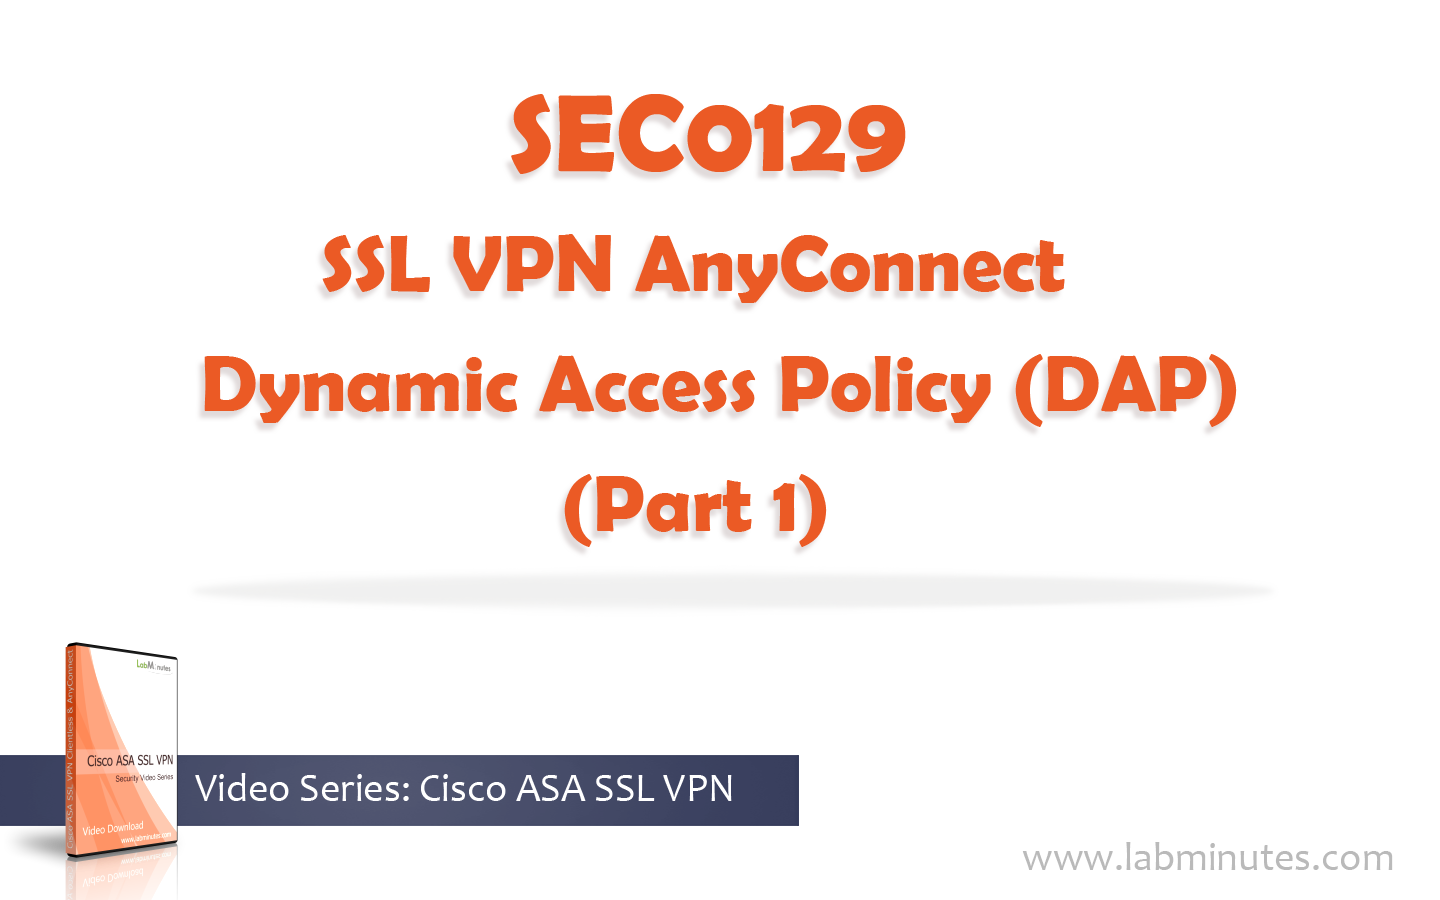 How to Configure Cisco SSL VPN AnyConnect Dynamic Access